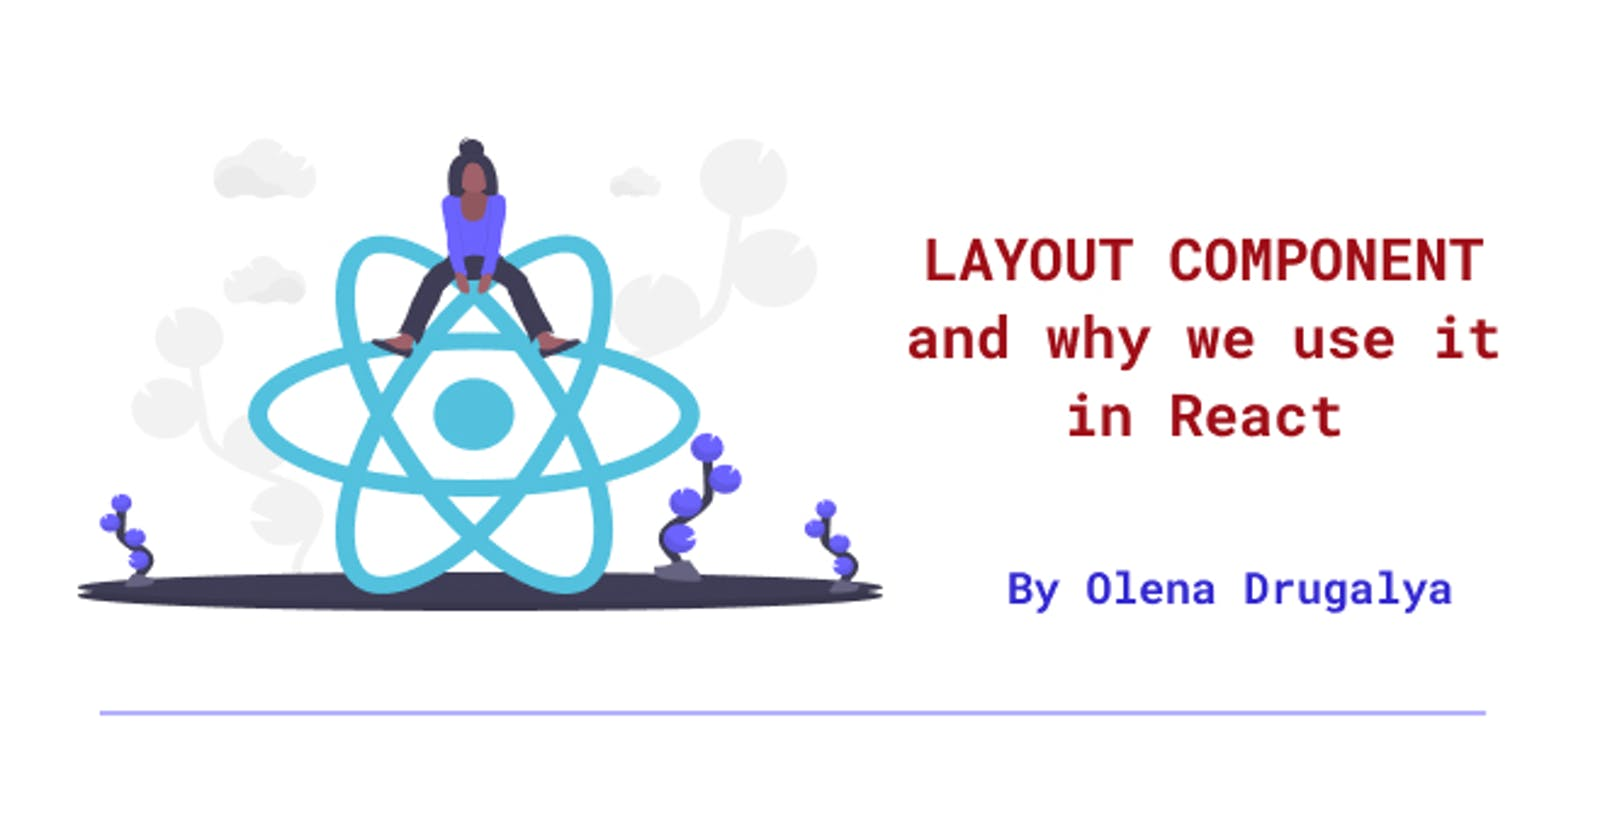 Layout Component and why we use it in React